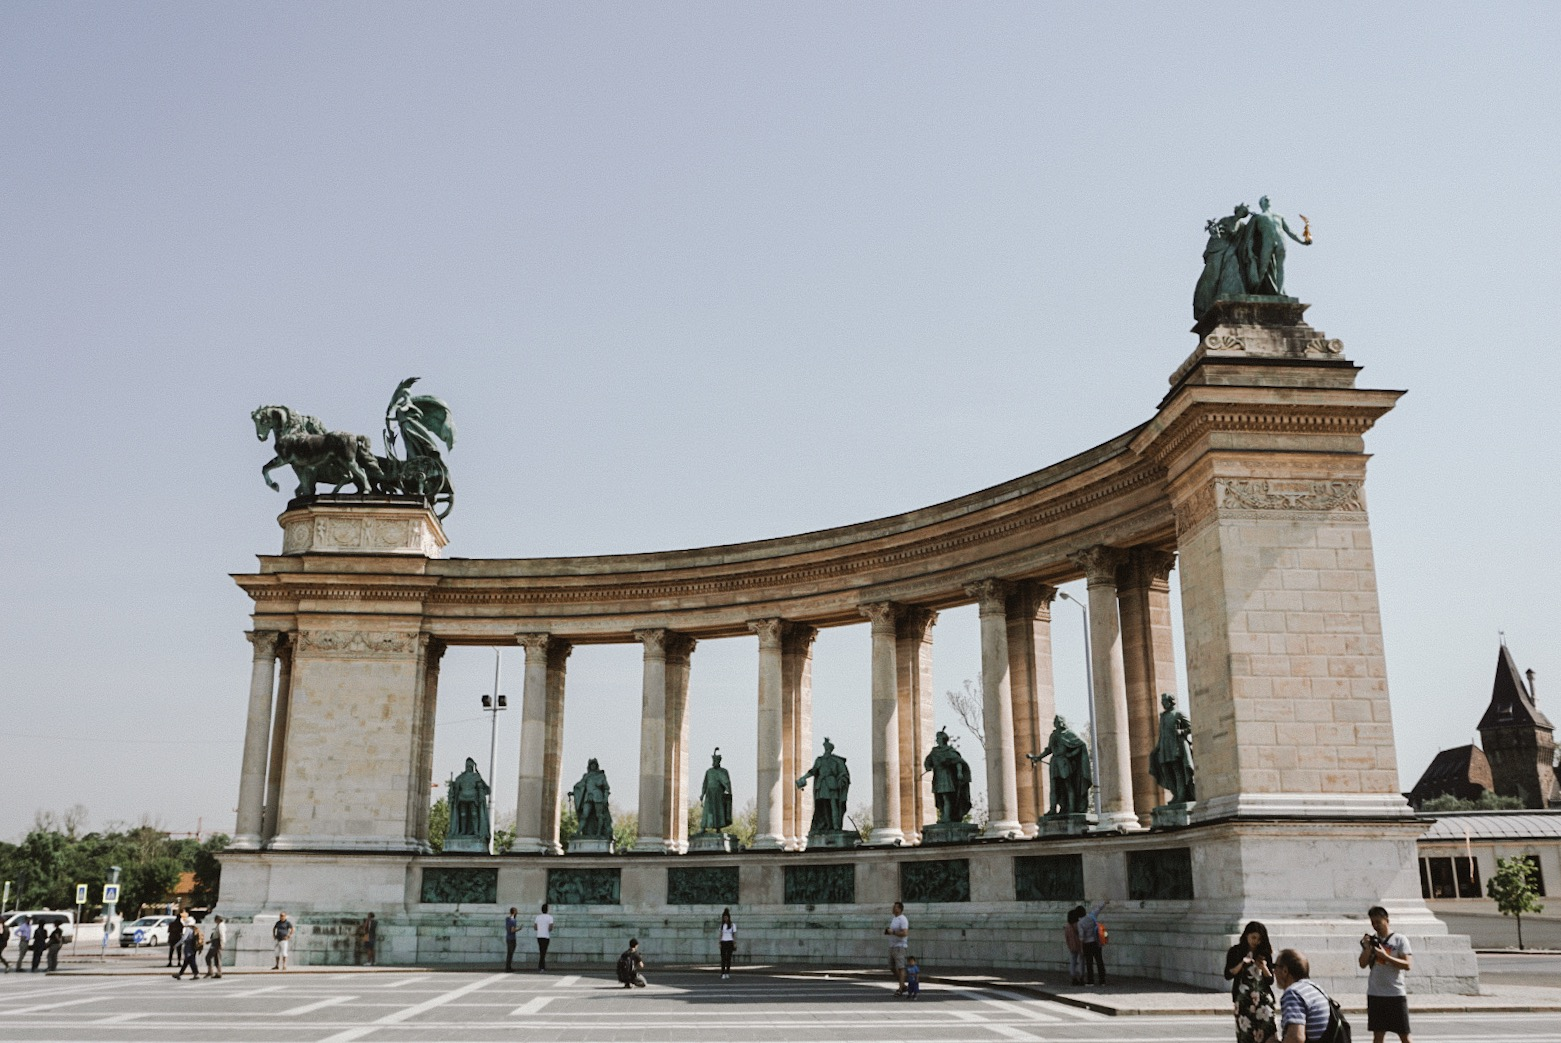 Heroes Square:  At the base of the columns are the Seven Chieftains of the Magyars or clans.These clans eventually established the Principality of Hungary.